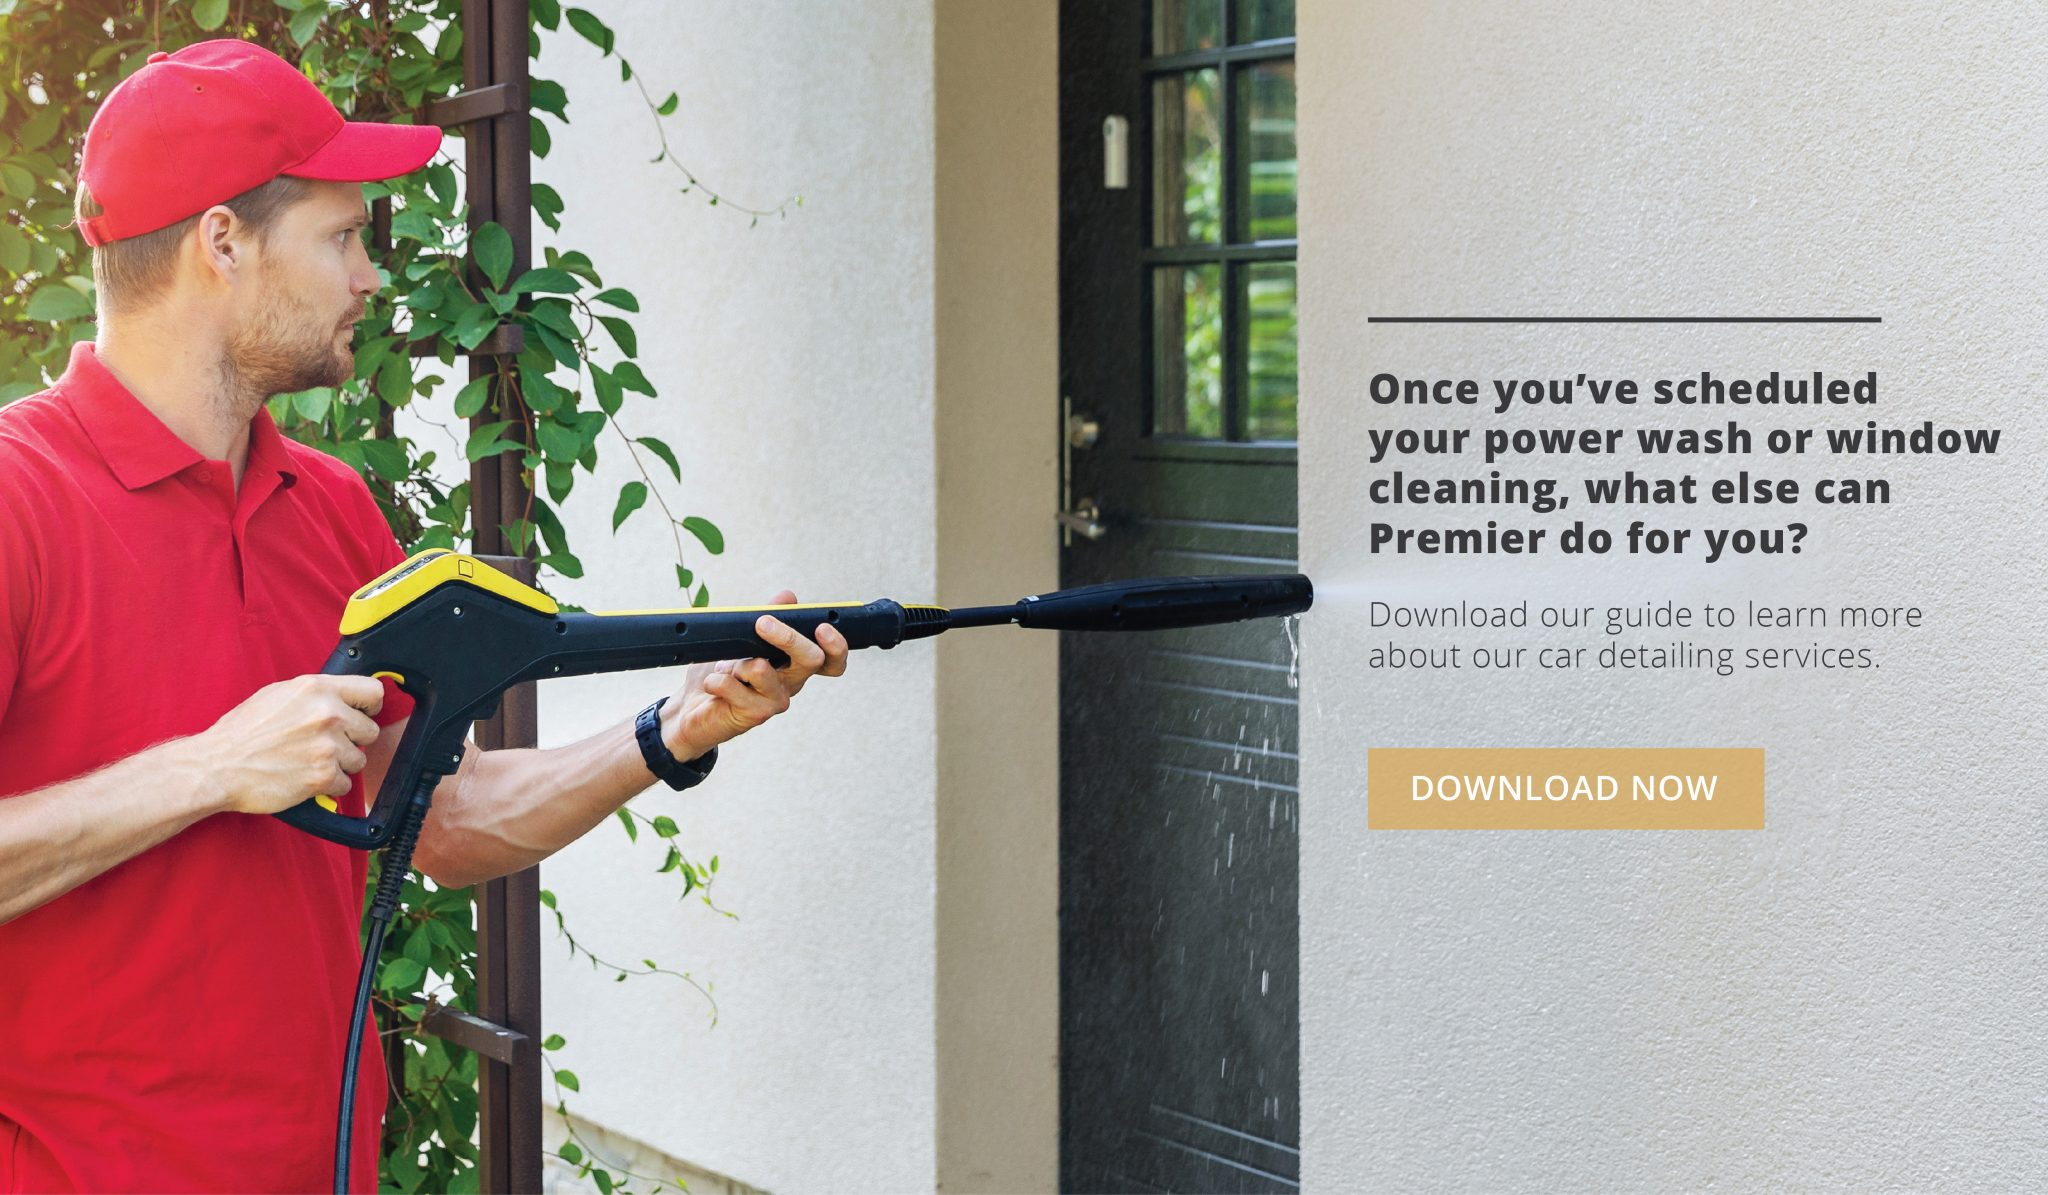 There are a variety of reasons to get professional power washing and window cleaning with Premier.